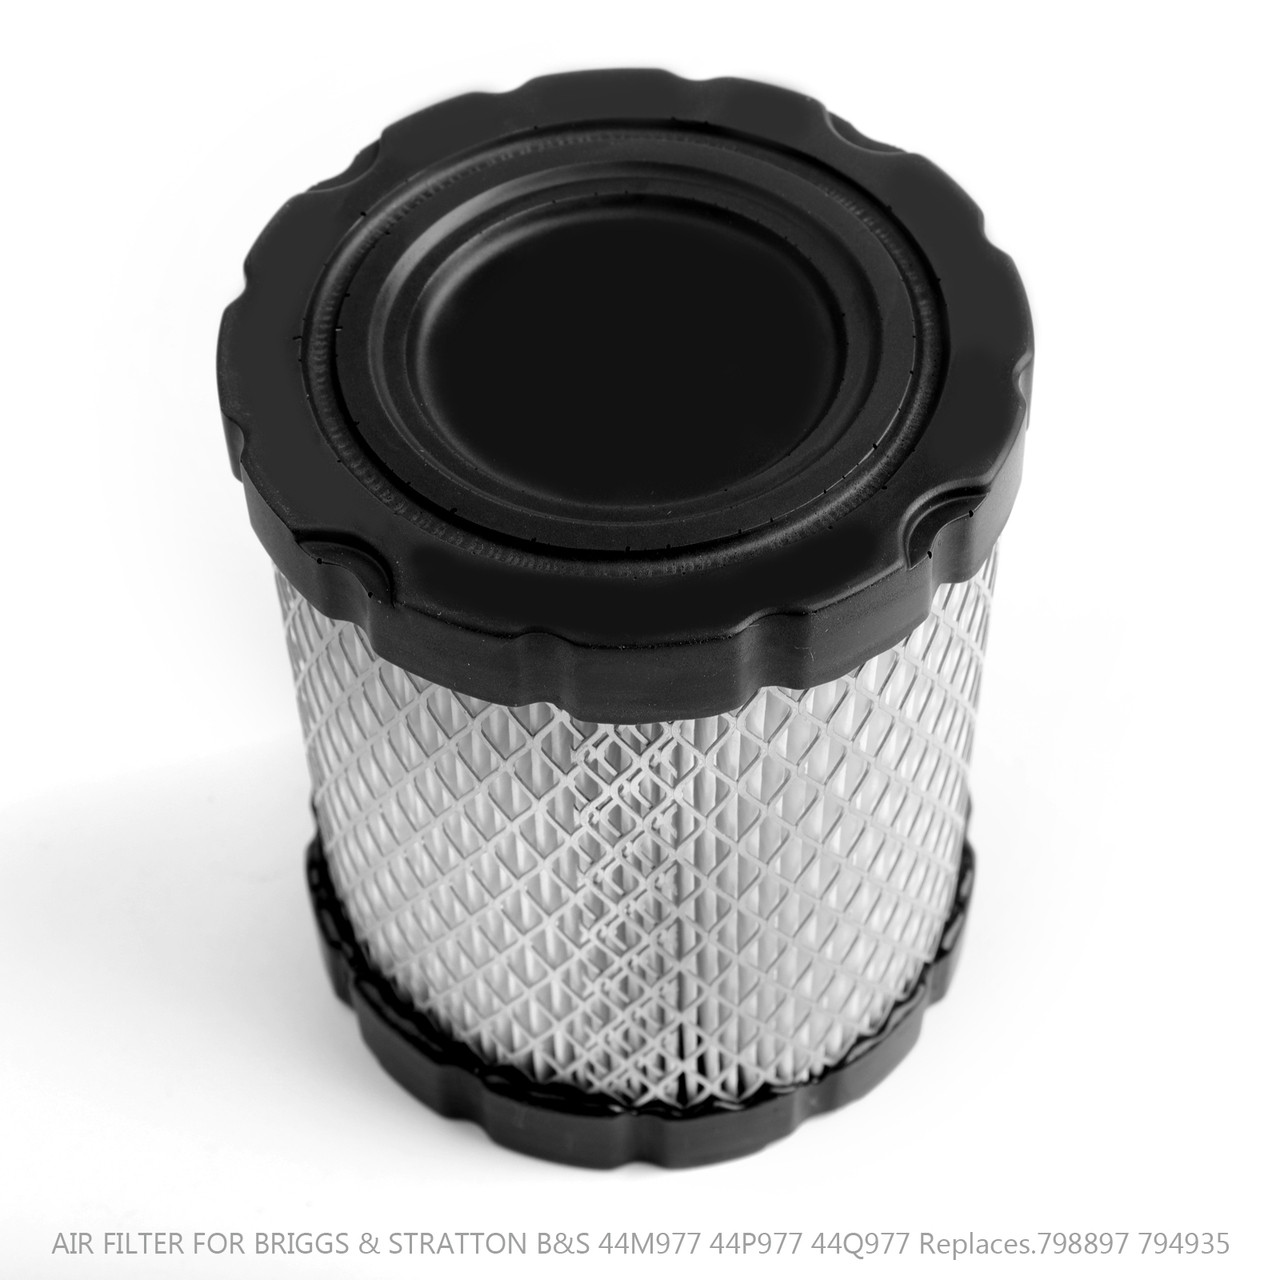 AIR FILTER REPLACEMENT FOR BS 798897 794935 44M977 44P977 44Q977